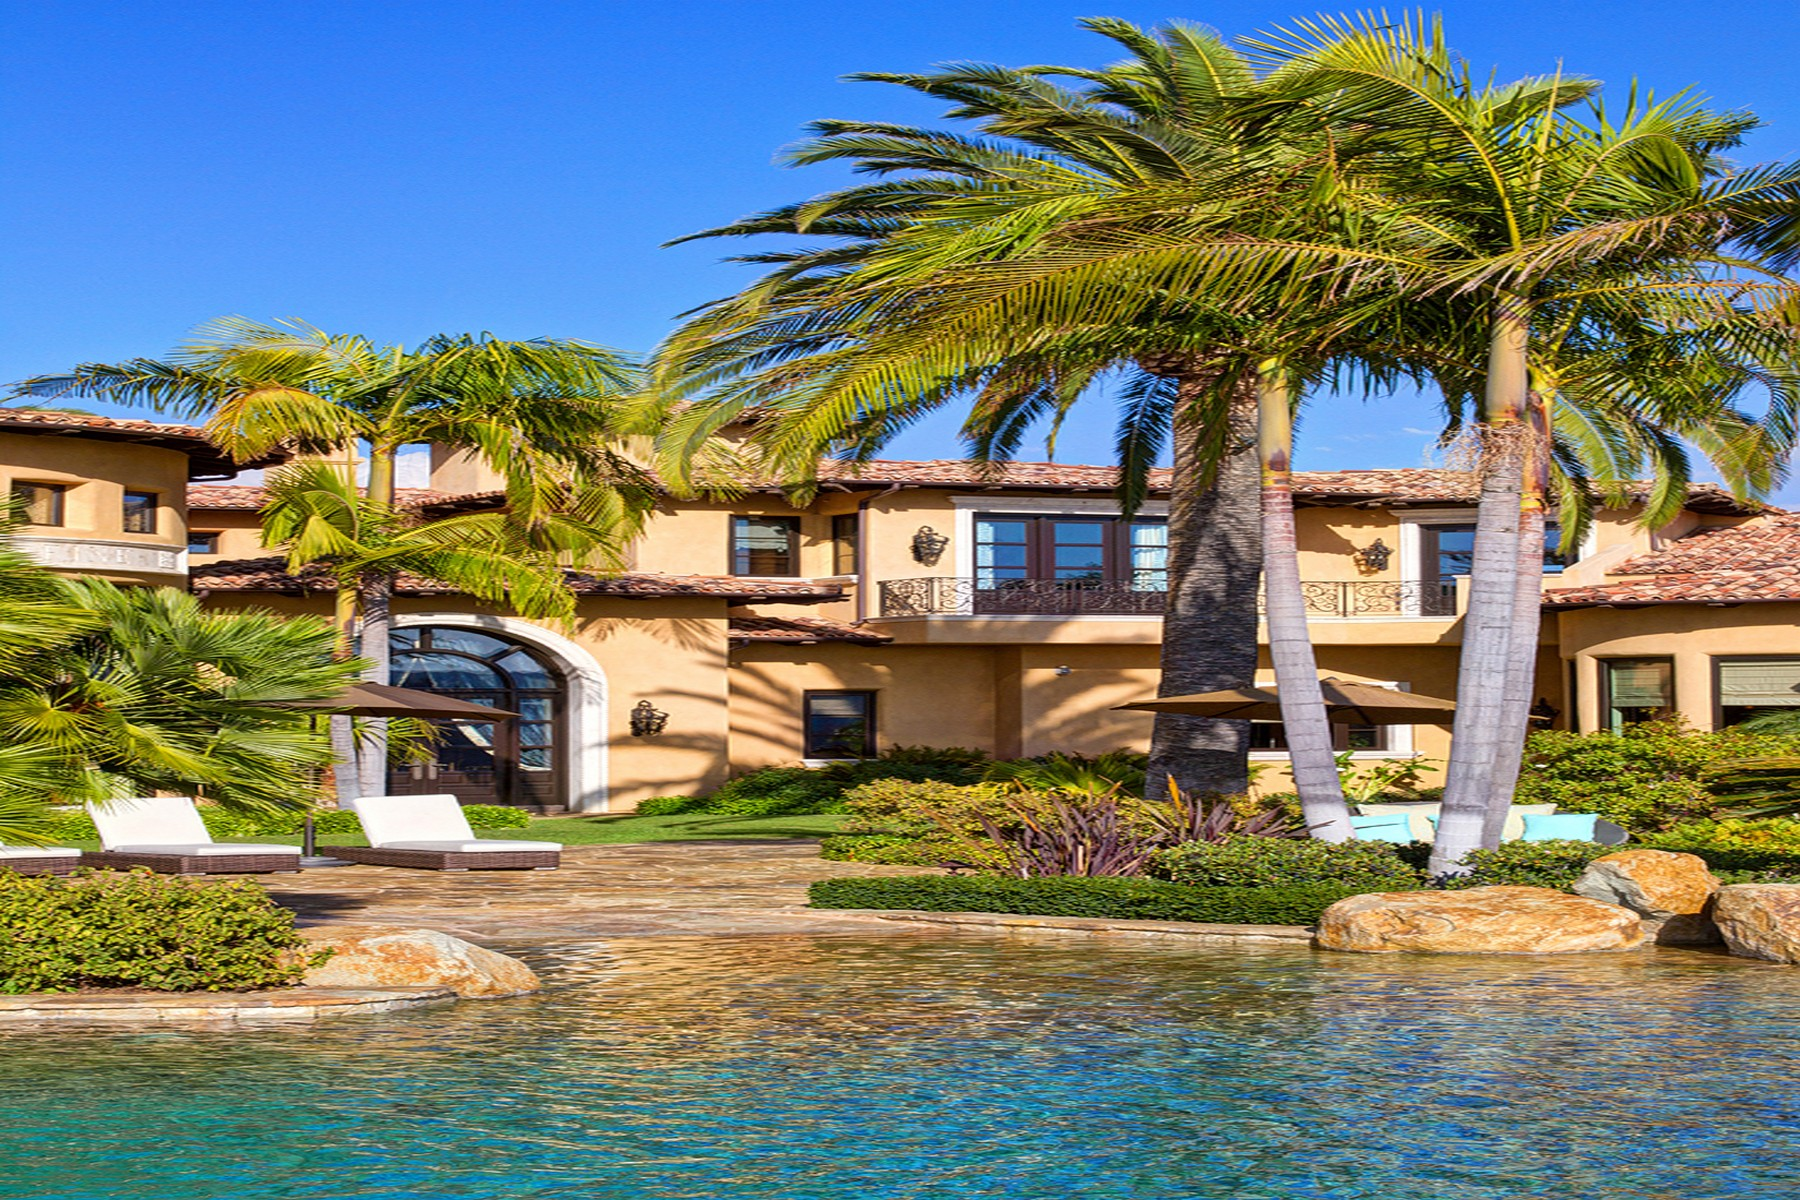 Additional photo for property listing at 14385 Cypress Point  Poway, Californie 92064 États-Unis